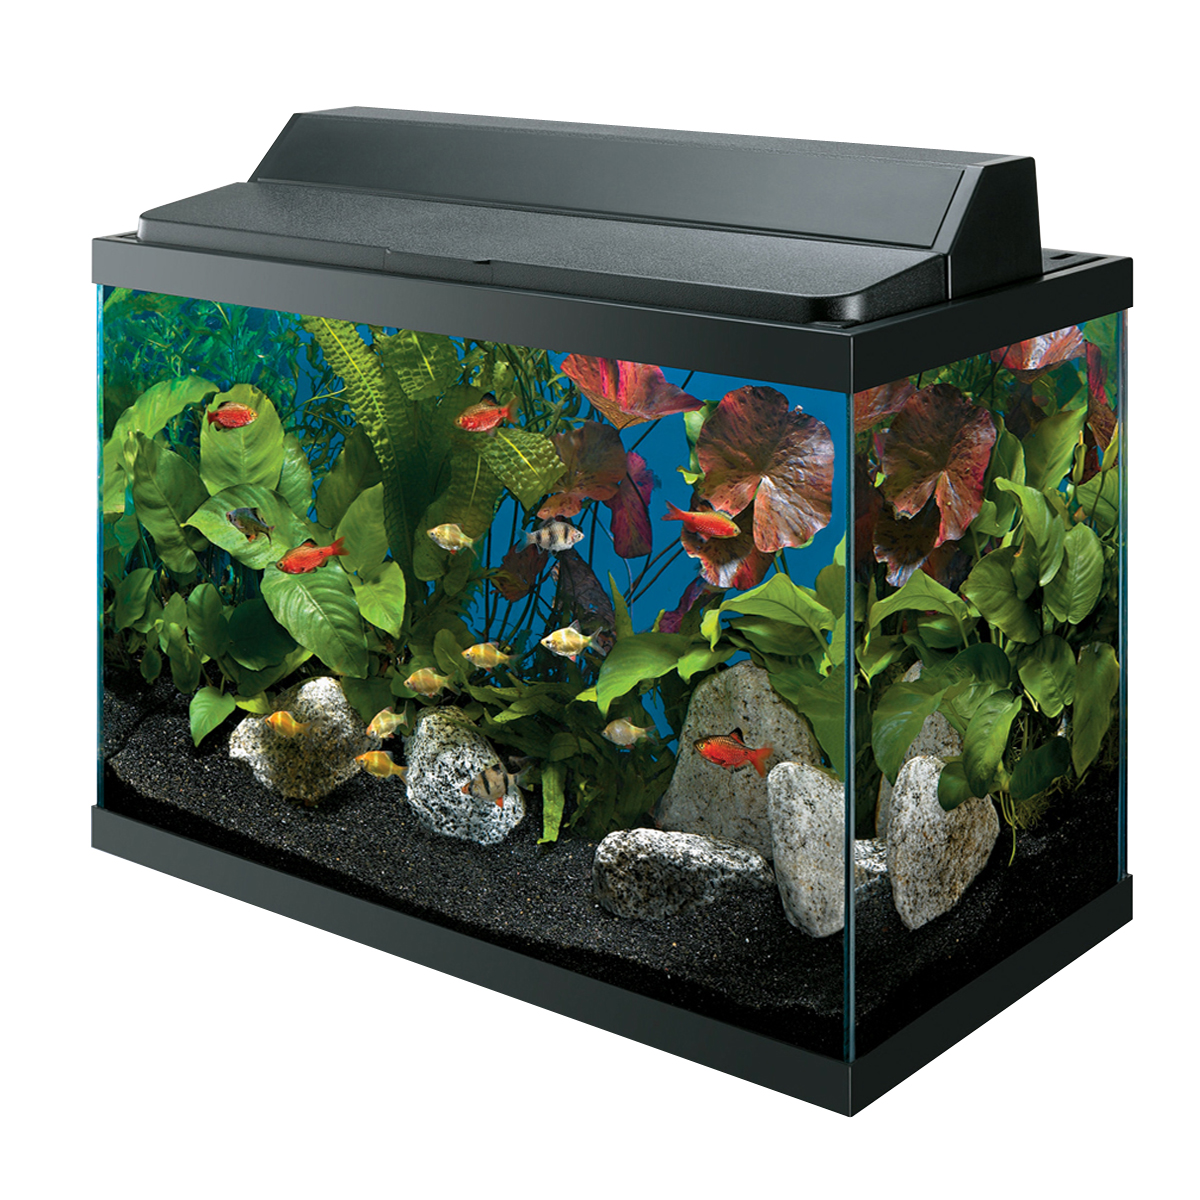 Aqueon-Deluxe-Aquarium-Kit